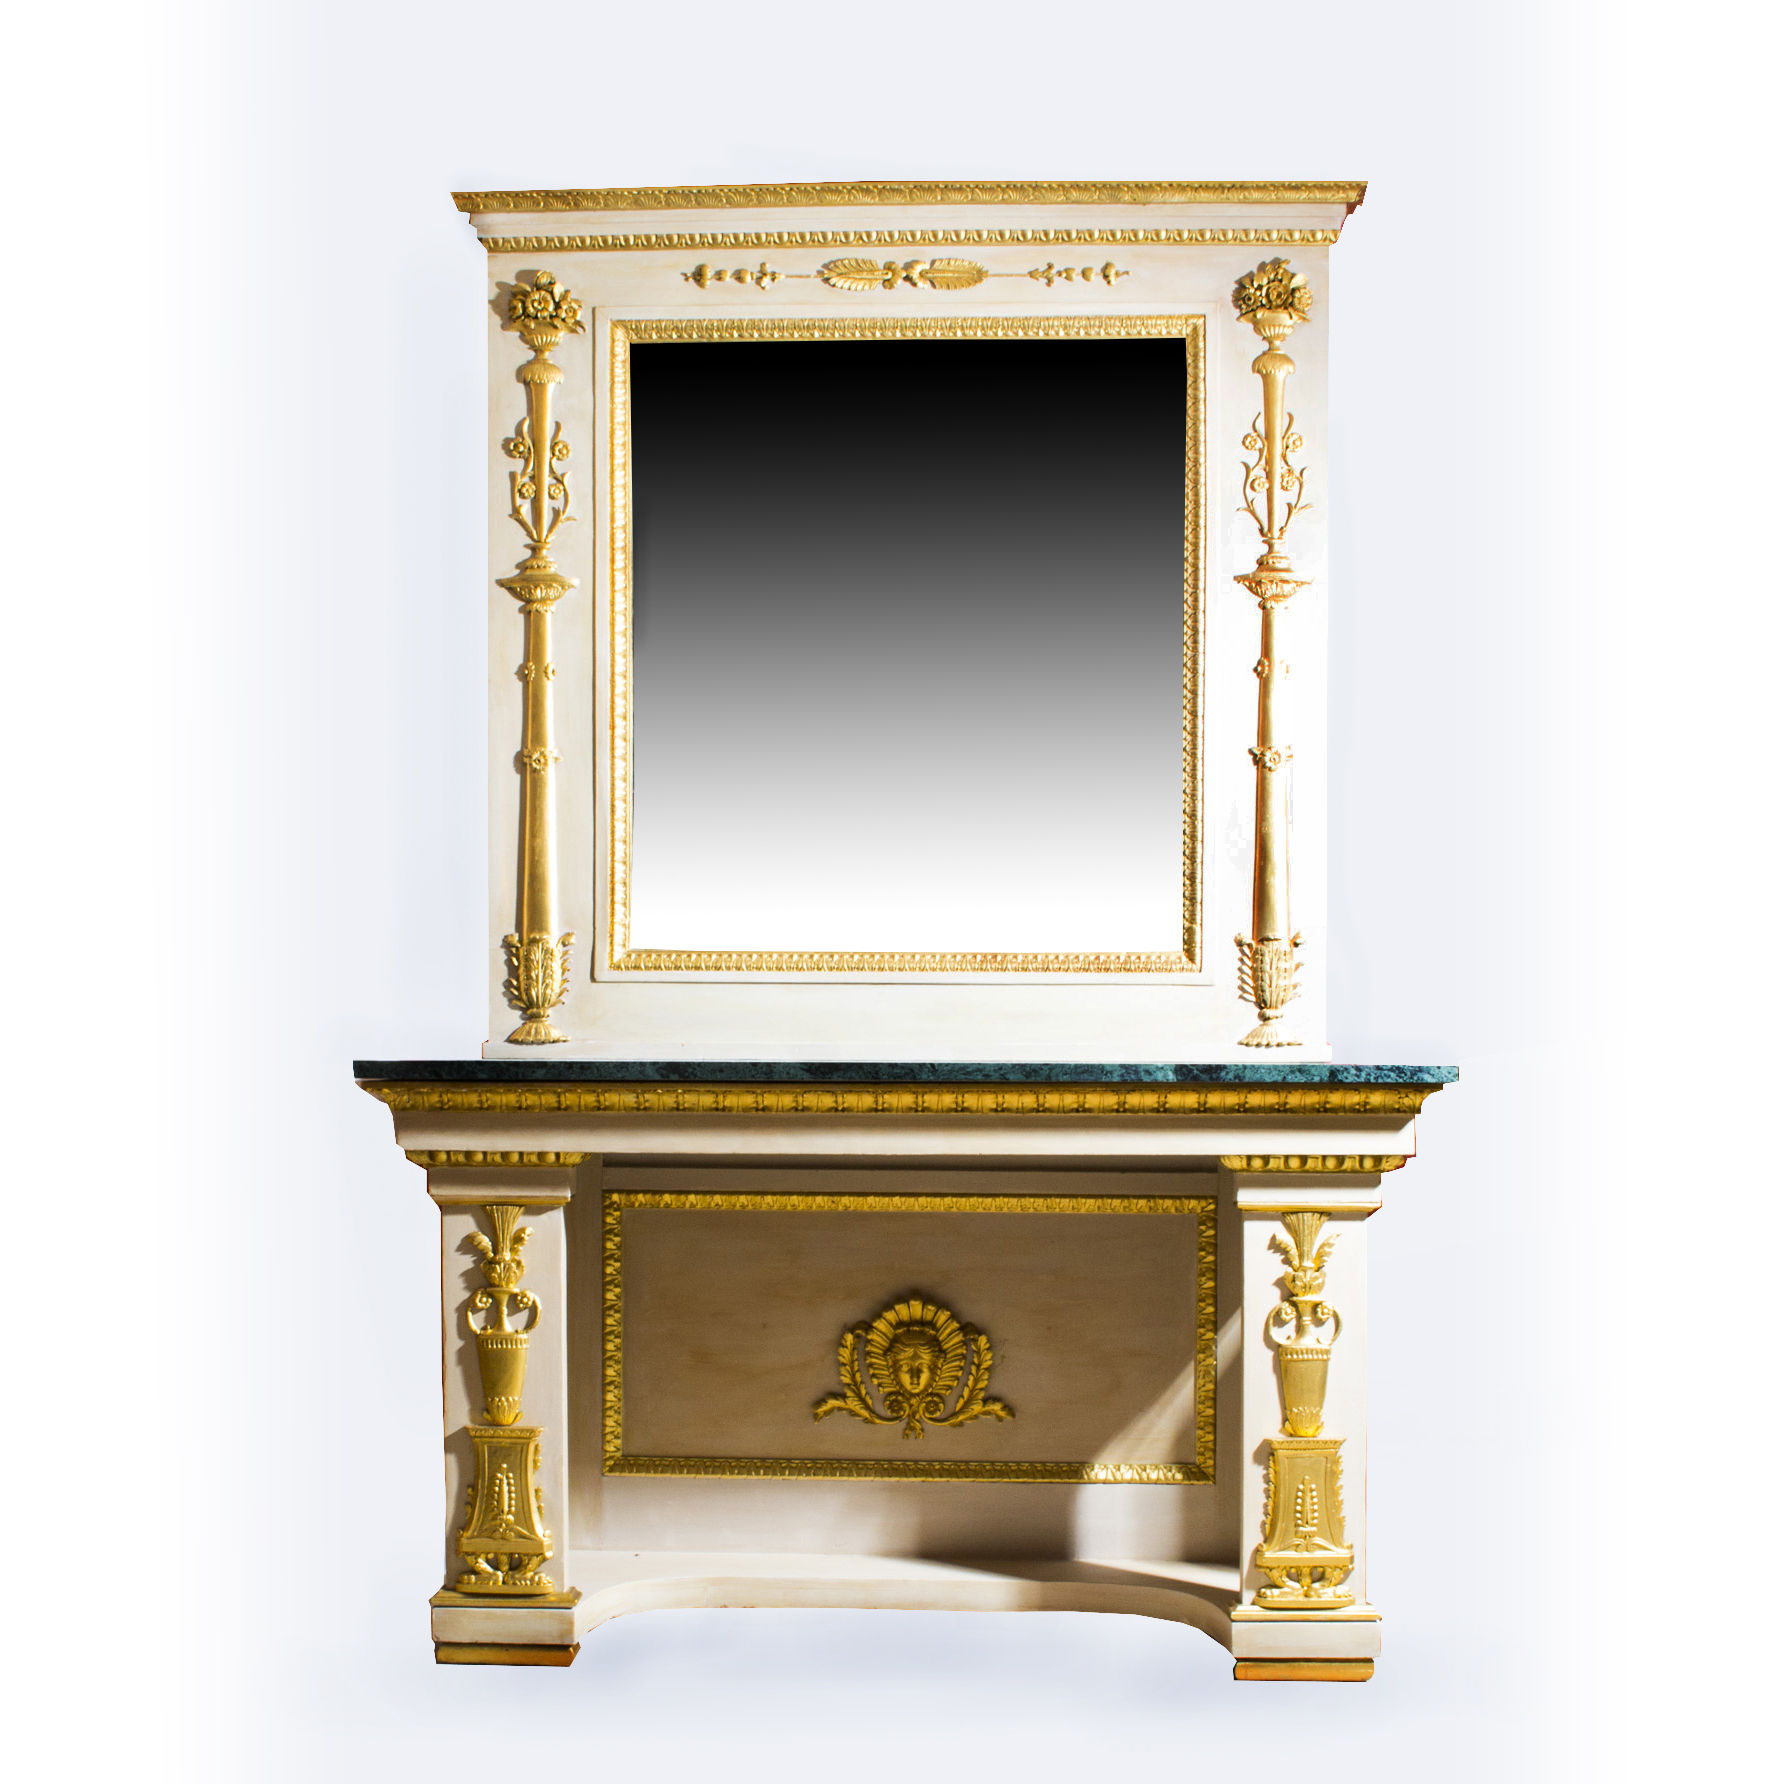 Antique Roman Console Table With Mirror & Marble Top 248 X 168 Cm (c Throughout Roman Metal Top Console Tables (View 15 of 30)